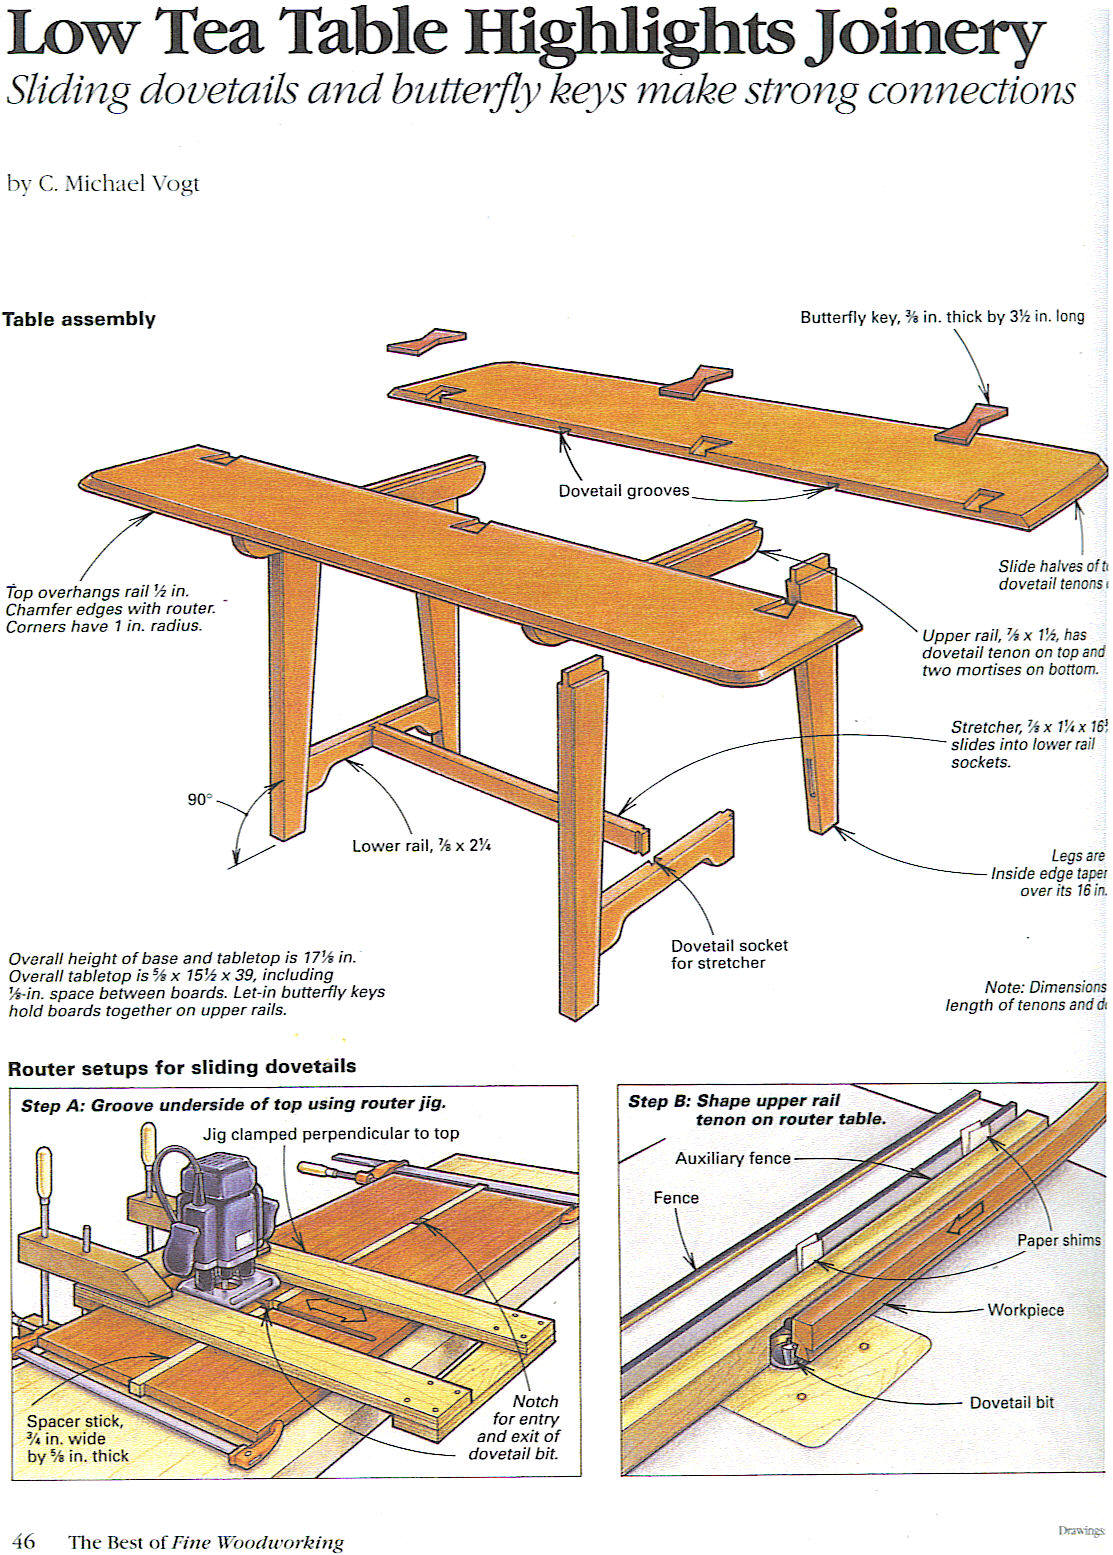 Low Tea Table Highlights Joinery